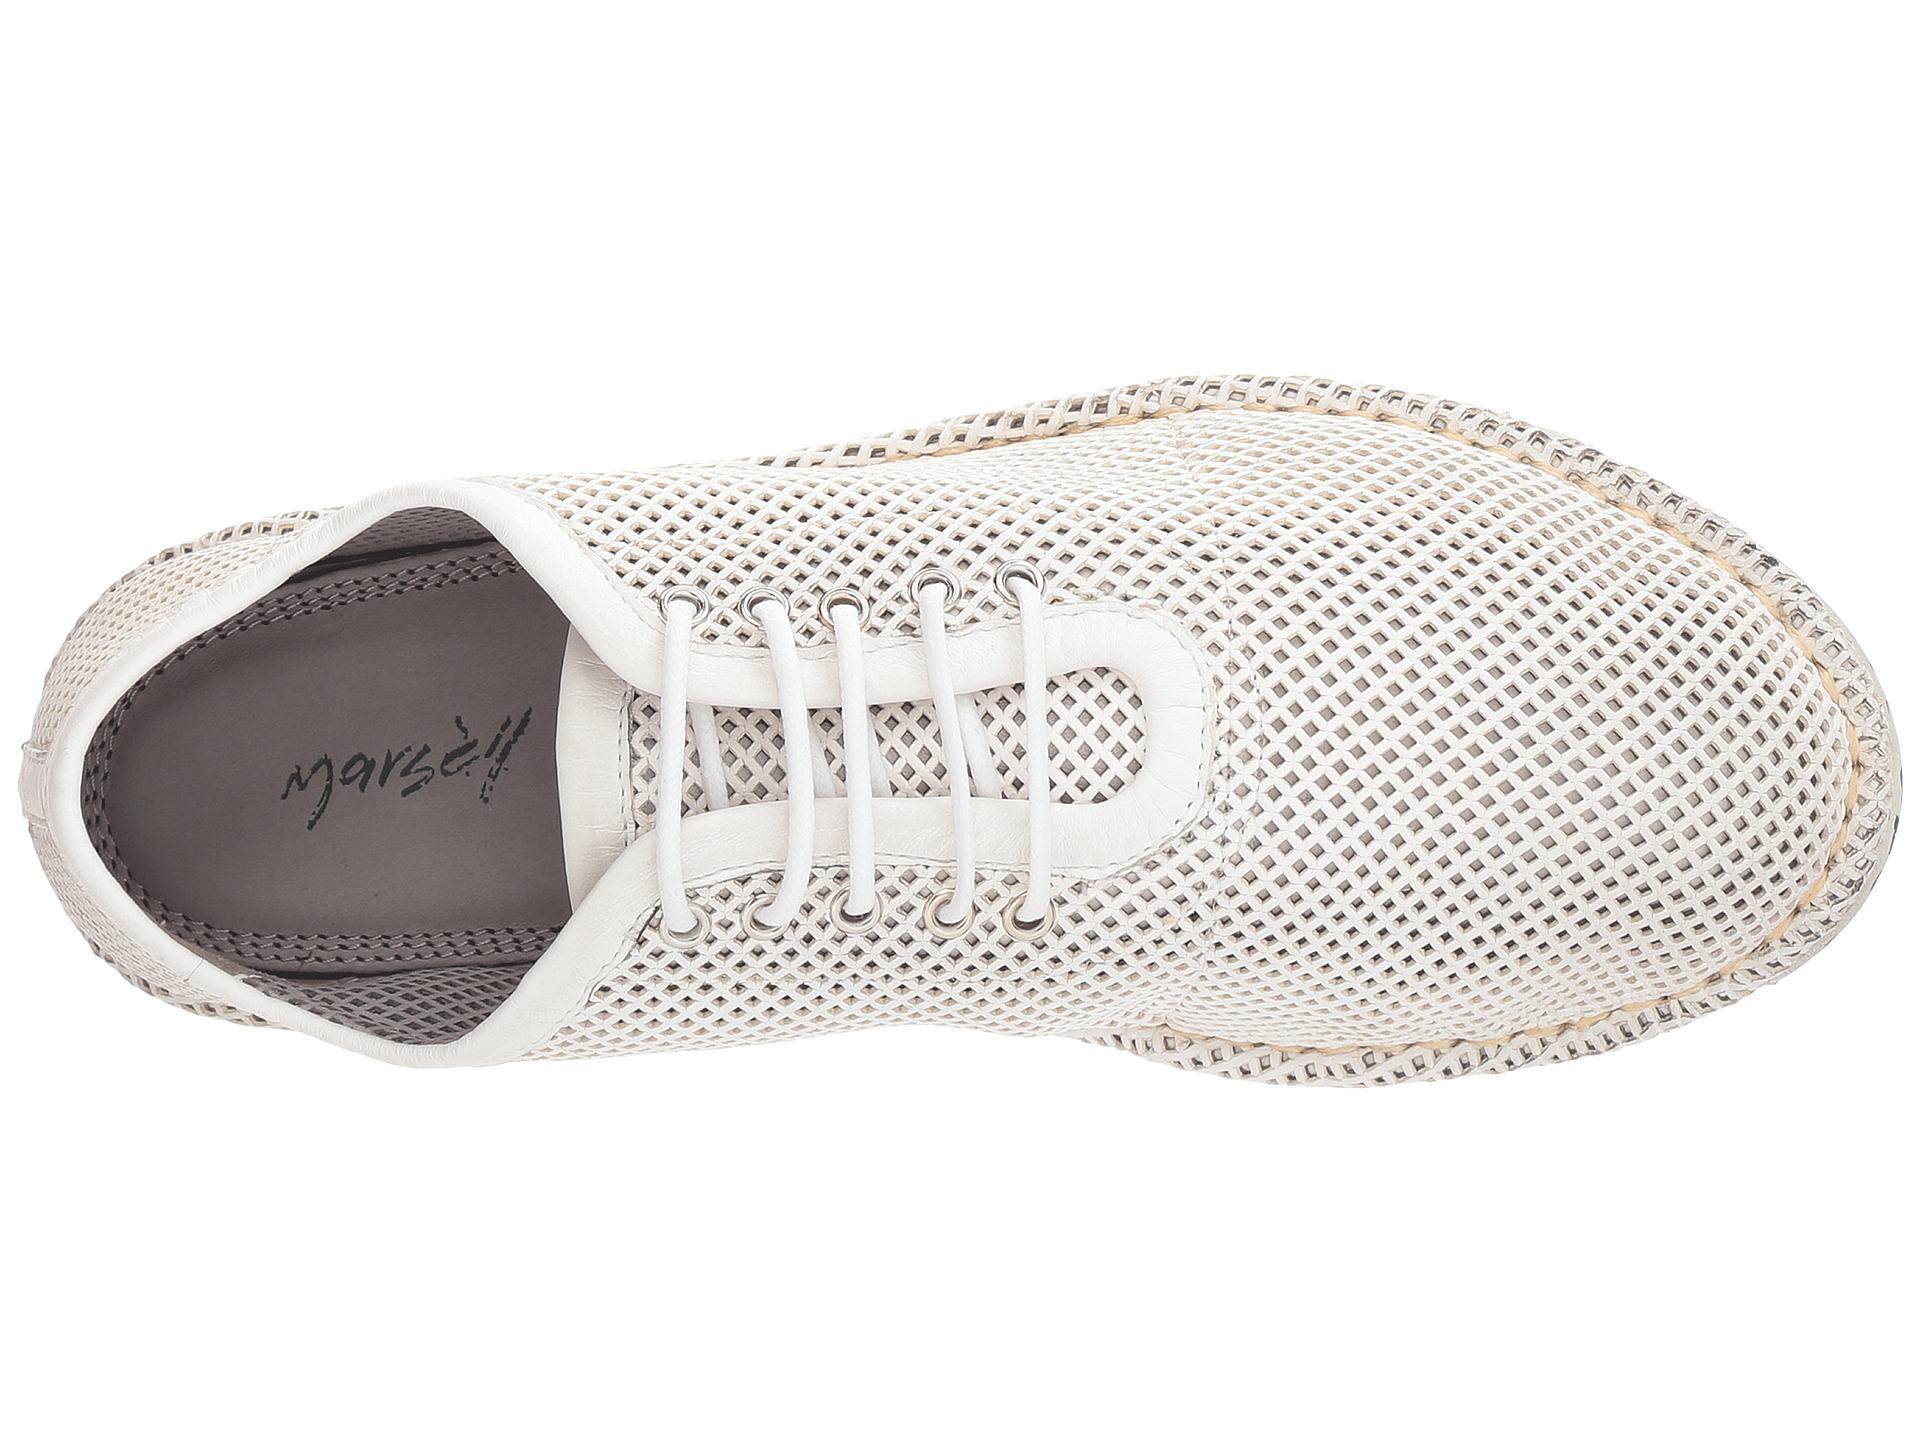 Gomme Mesh Sneaker Marsell puYJh3jy